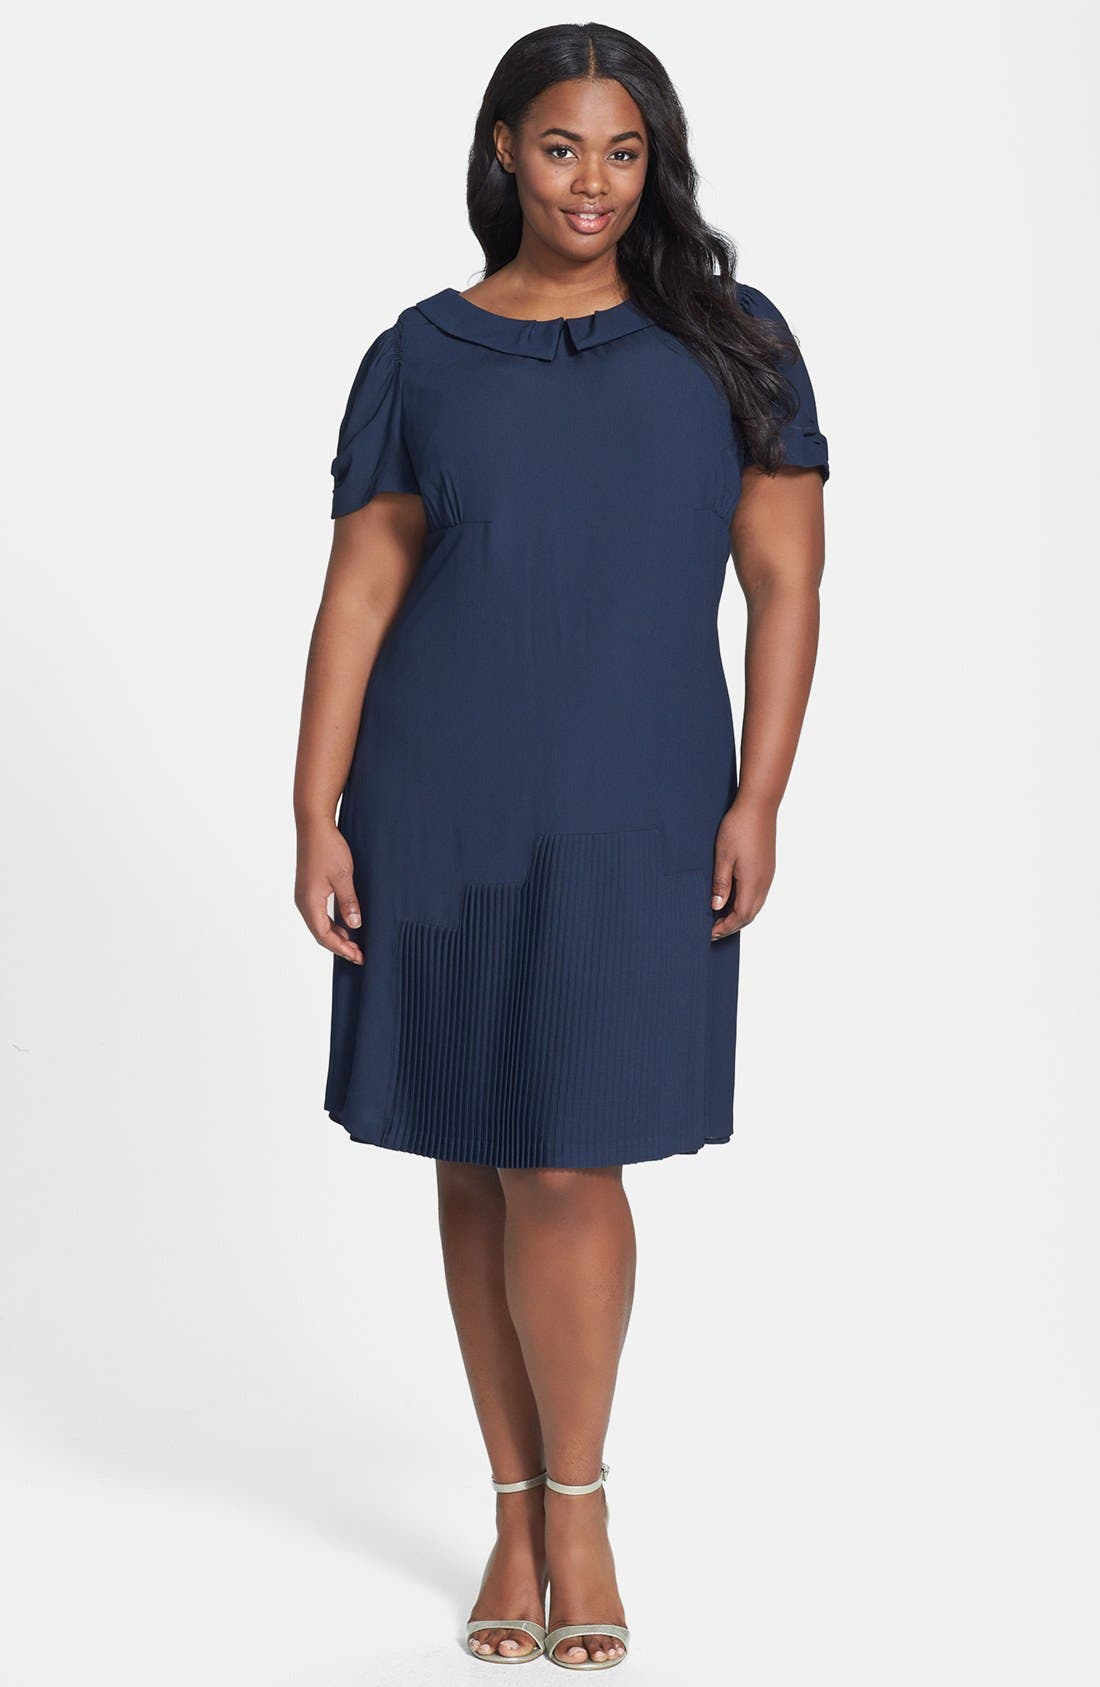 Main Image - ABS by Allen Schwartz Peter Pan Collar Dress (Plus Size)